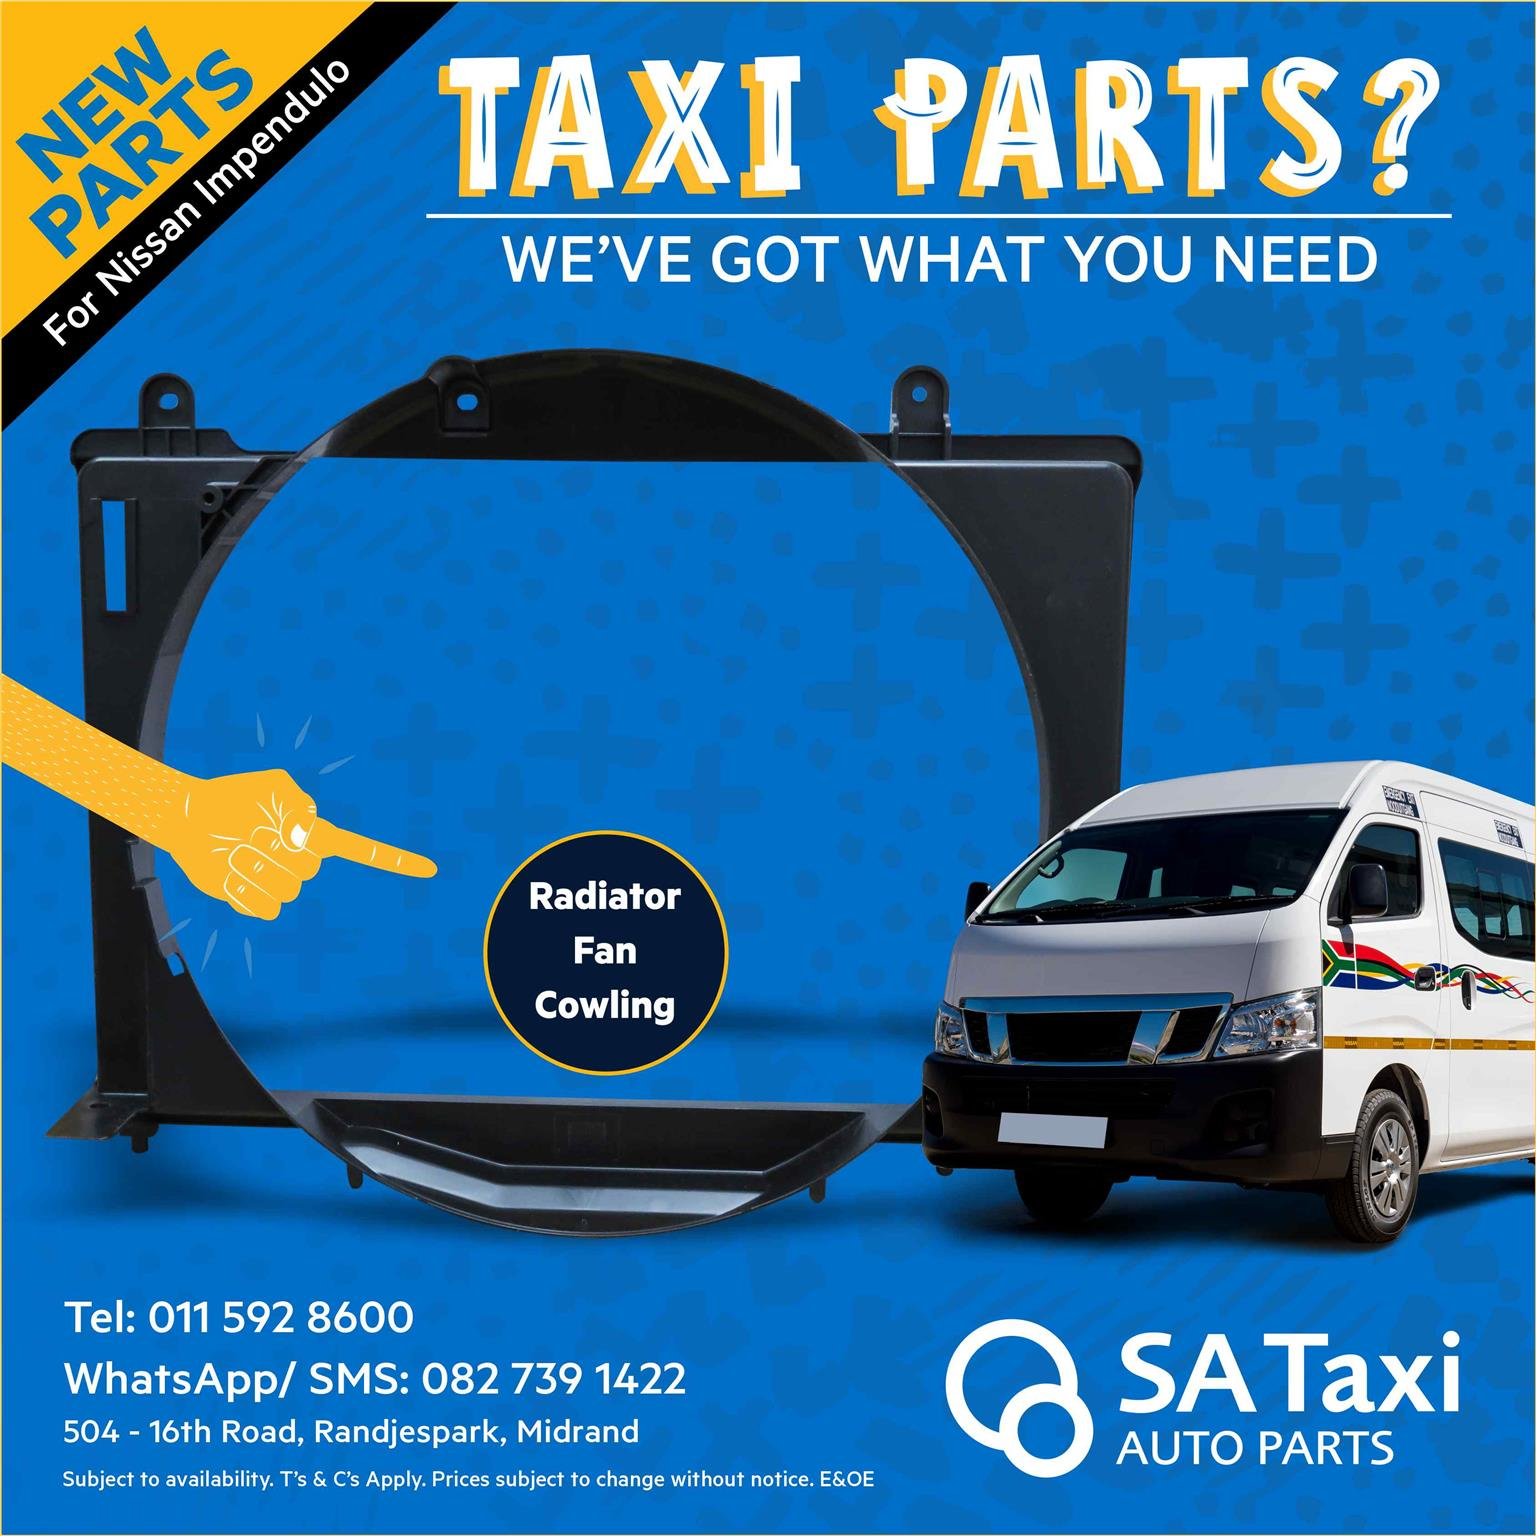 NEW Radiator Fan Cowling for Nissan Impendulo - SA Taxi Auto Parts quality spares